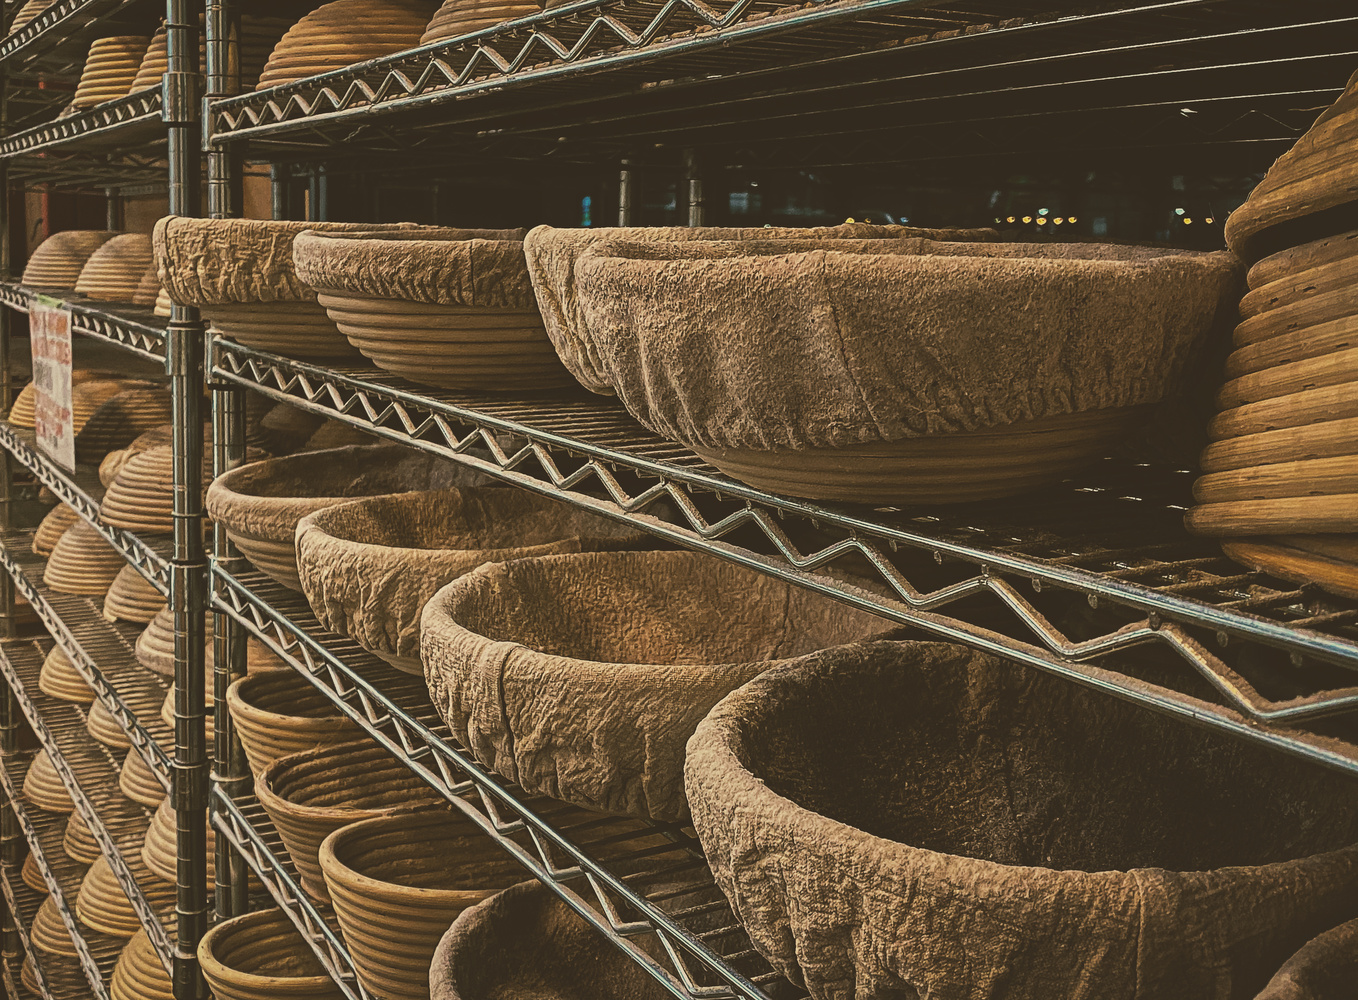 At the Bakery ~Bread Baskets by Heather Langlois